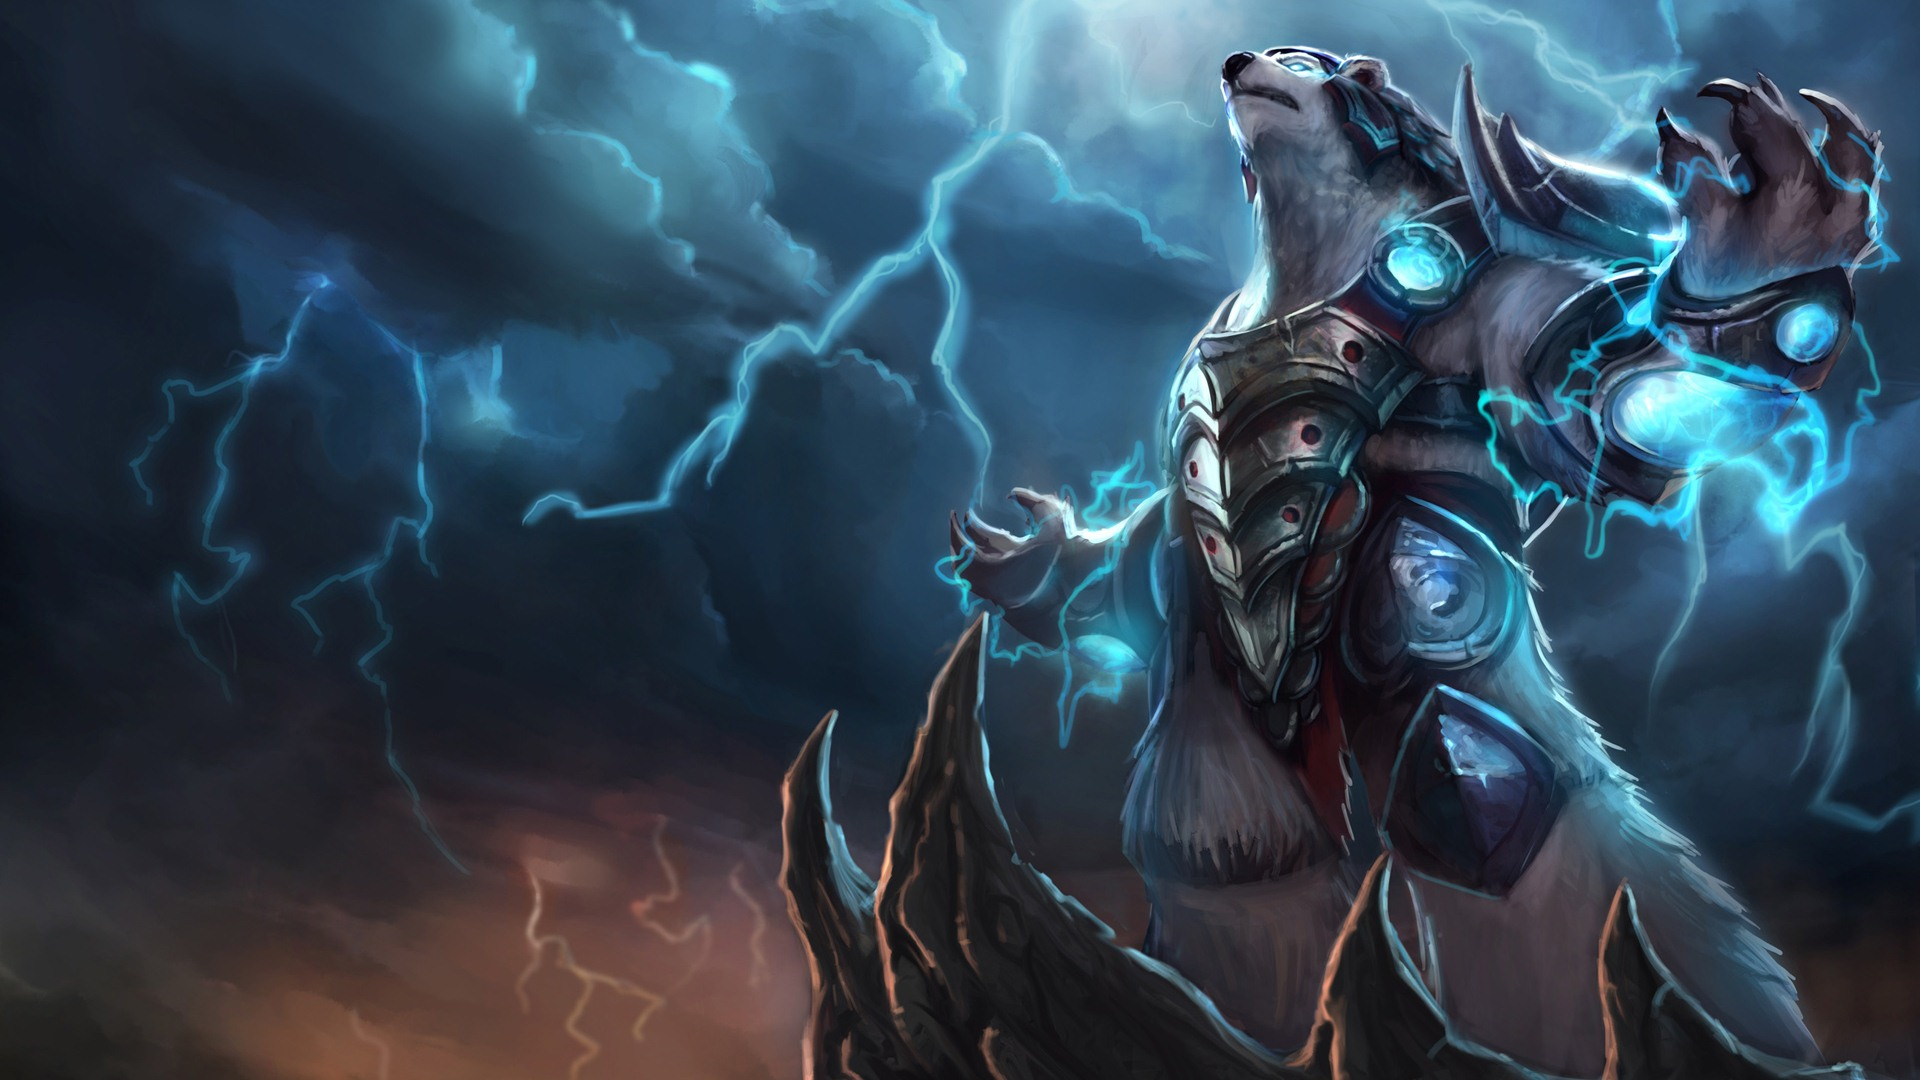 League of Legends game HD wallpapers #4 - 1920x1080 Wallpaper